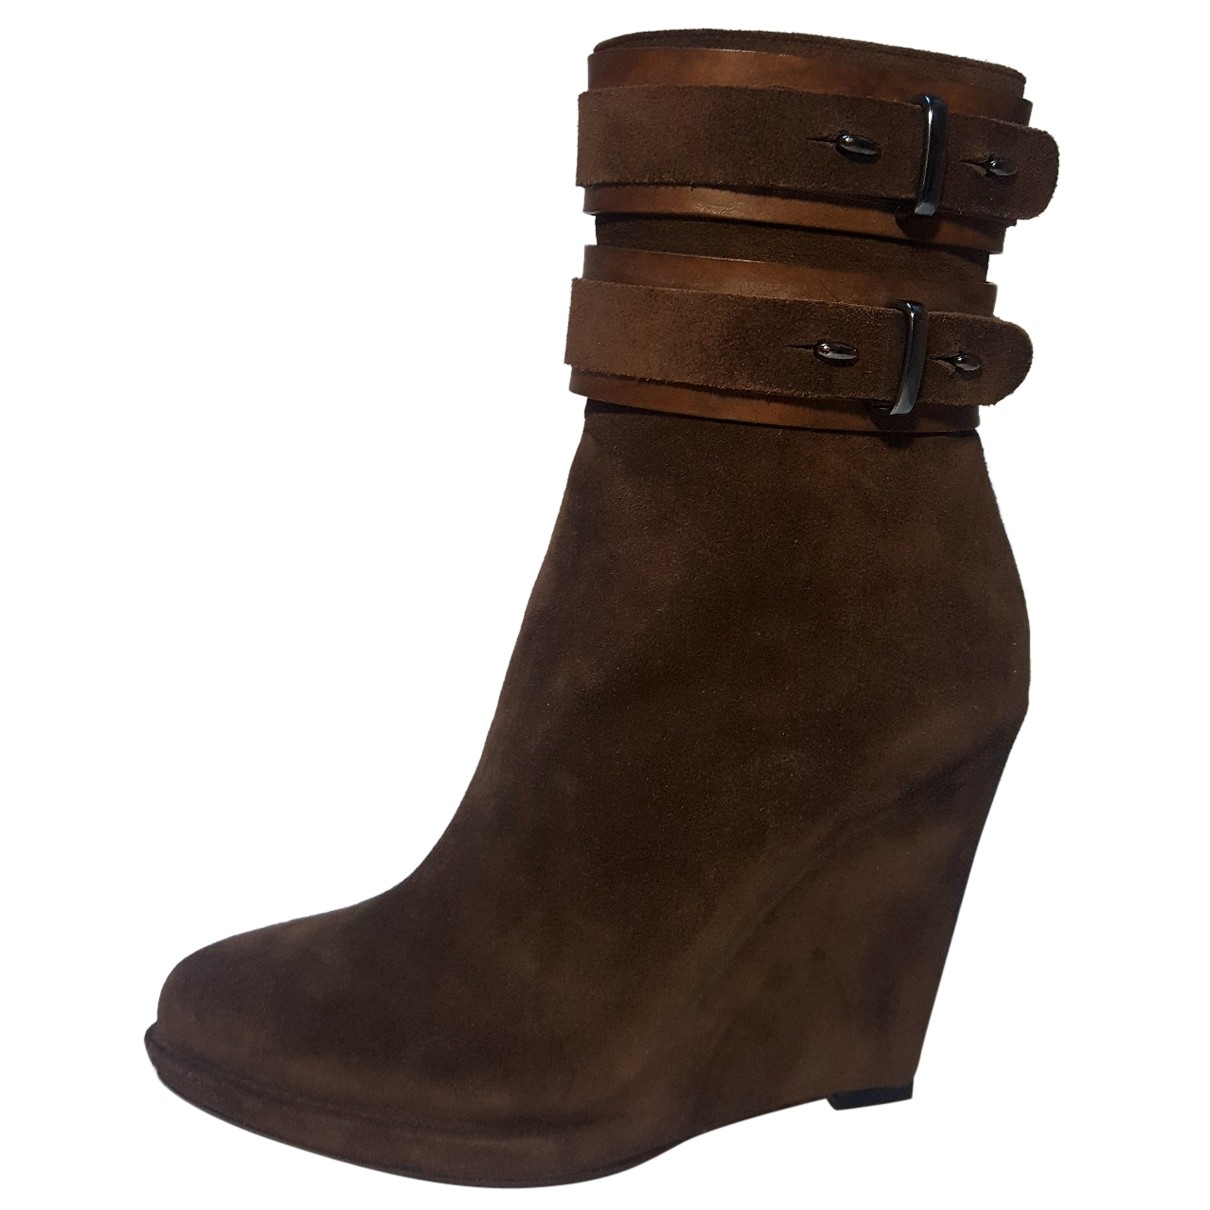 Givenchy \N Brown Suede Ankle boots for Women 37 EU